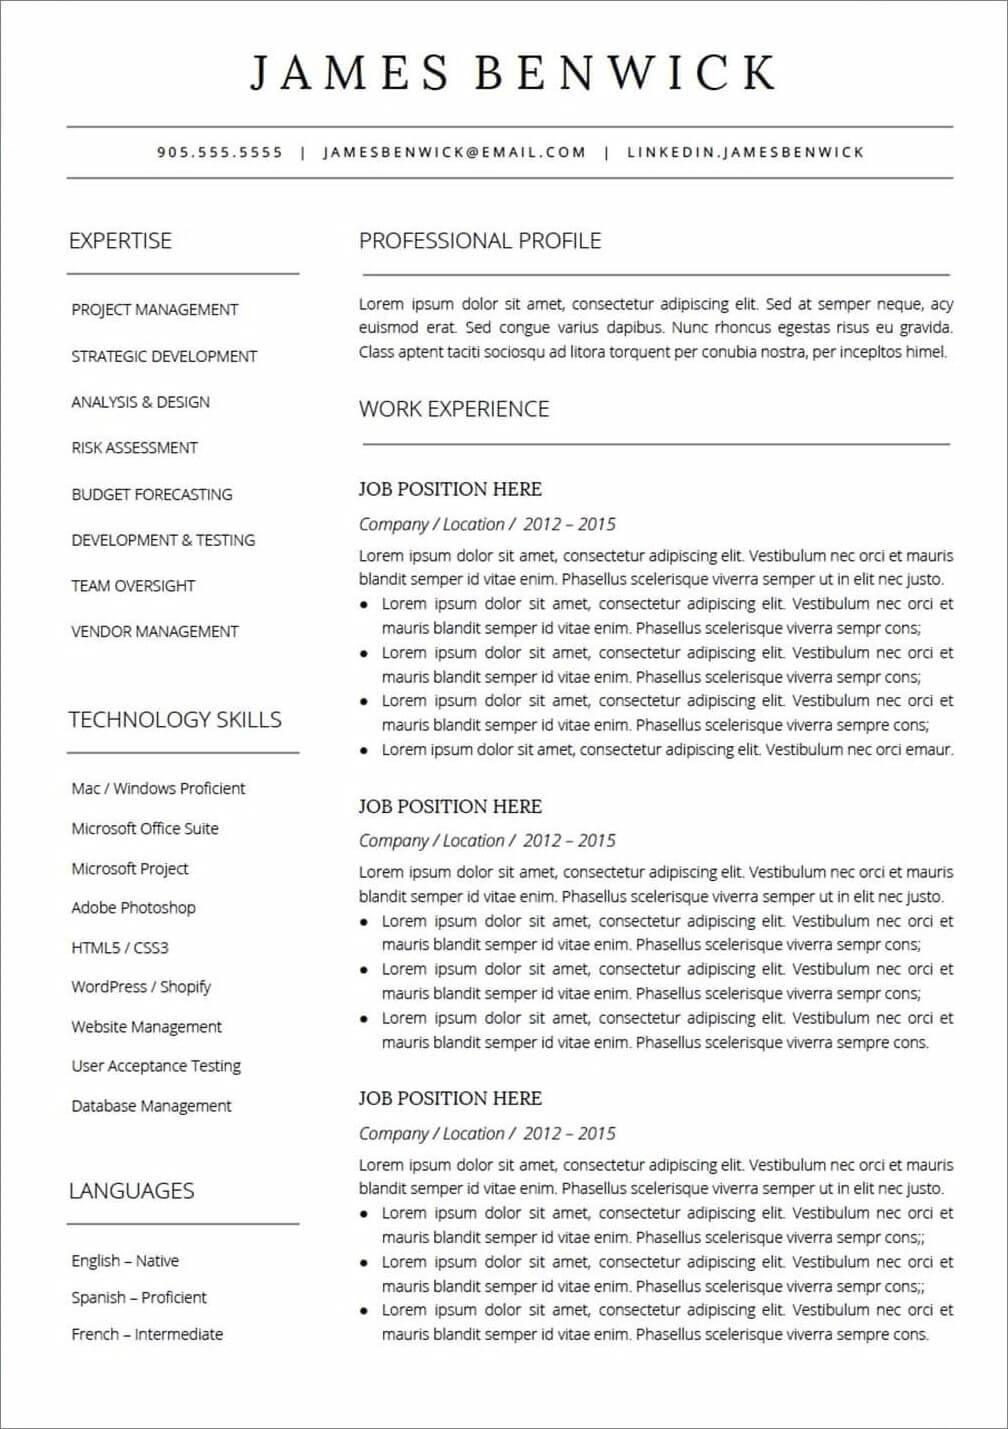 resume templates for google docs free drive resumelab new skills and abilities examples Resume Free Google Drive Resume Templates